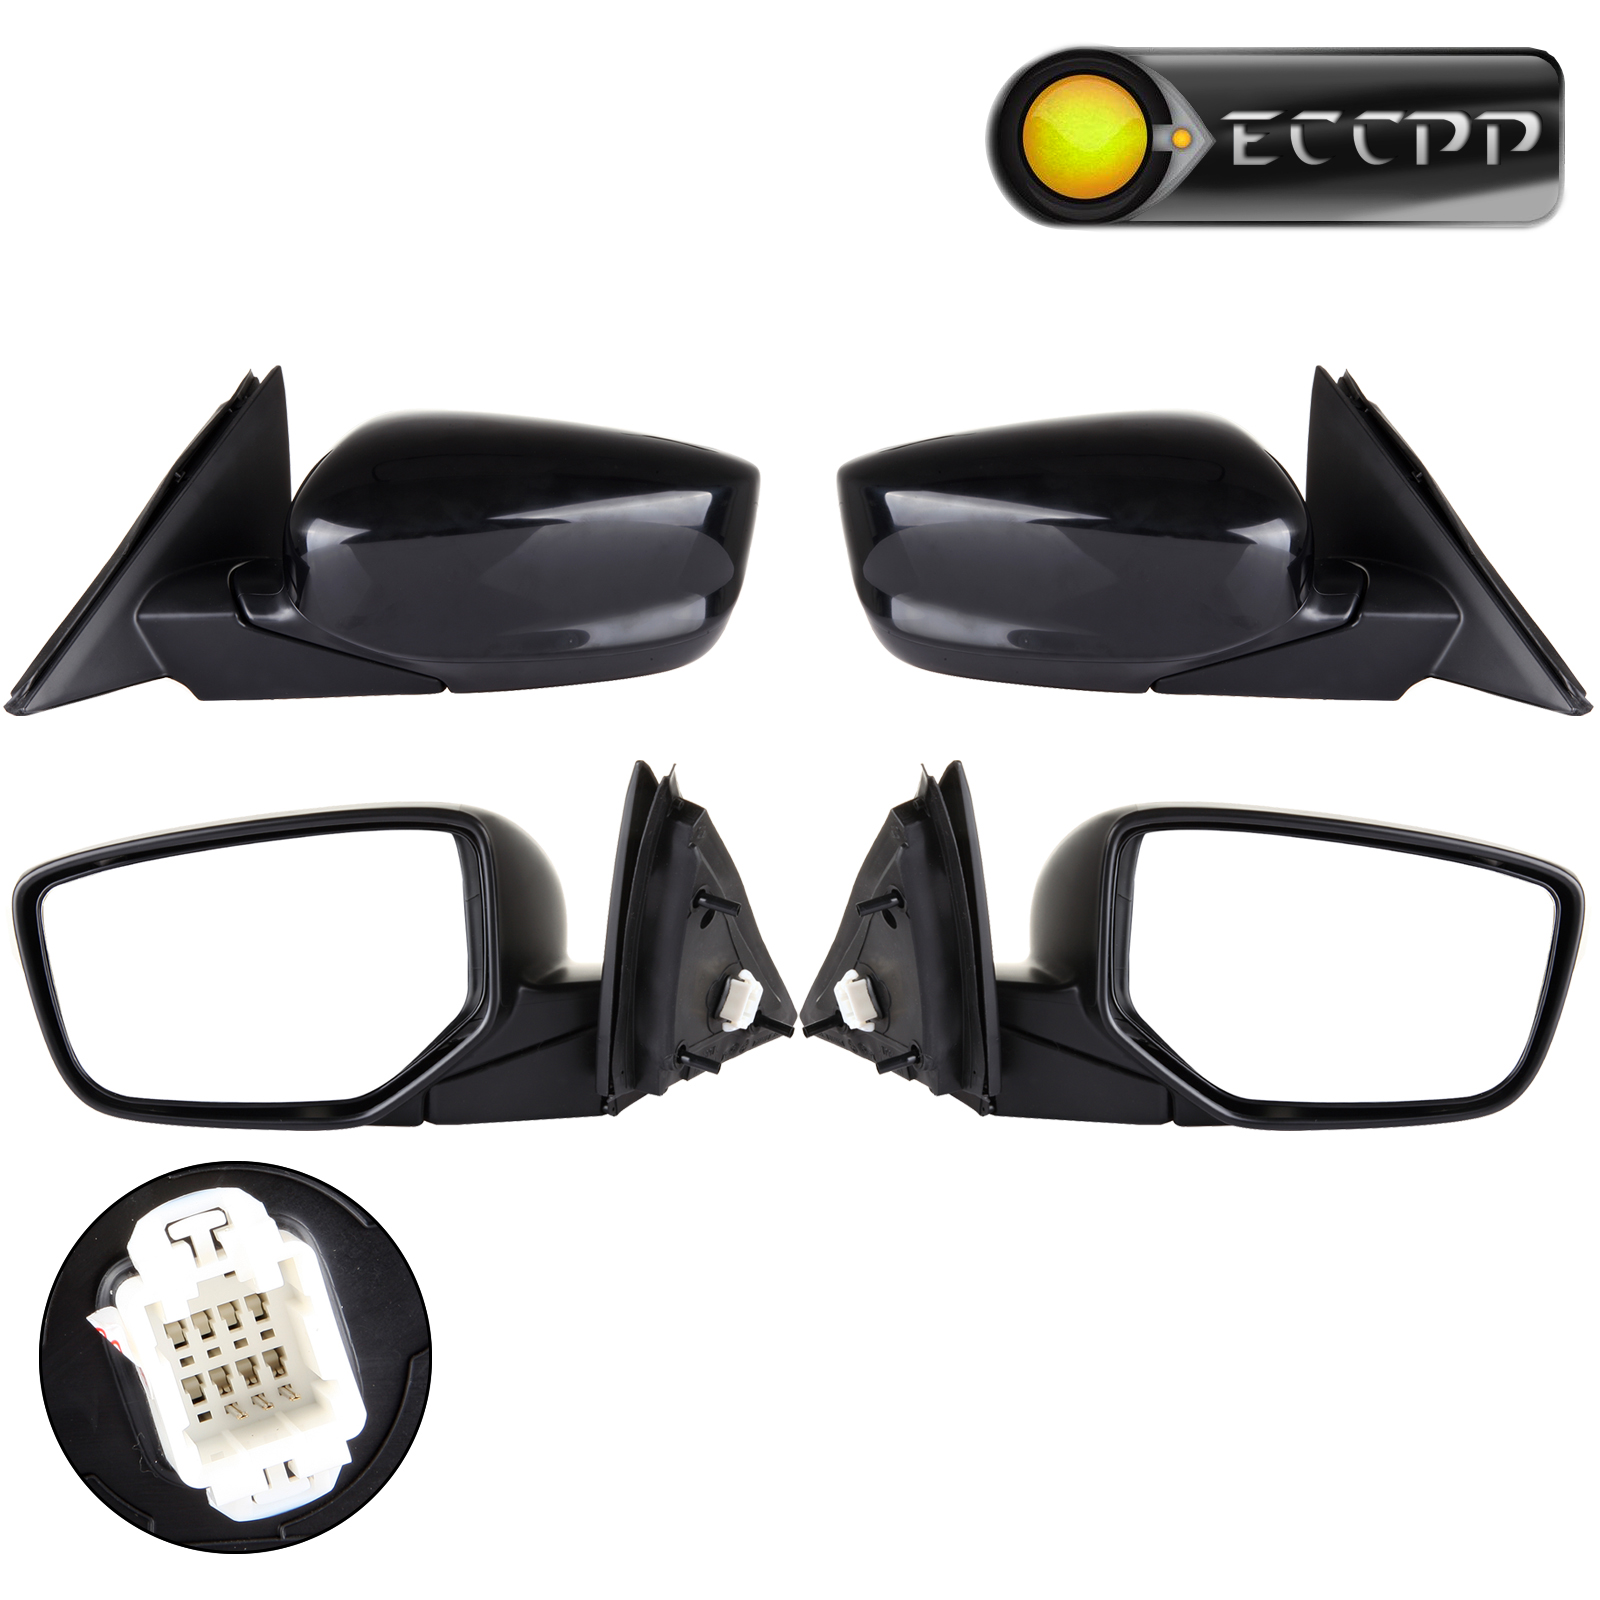 Eccpp Left Right Mirrors Pair Set For 2008 - 2012 Honda Accord Power Black Manual Folding Rear View Driver Passenger Mirrors what she left